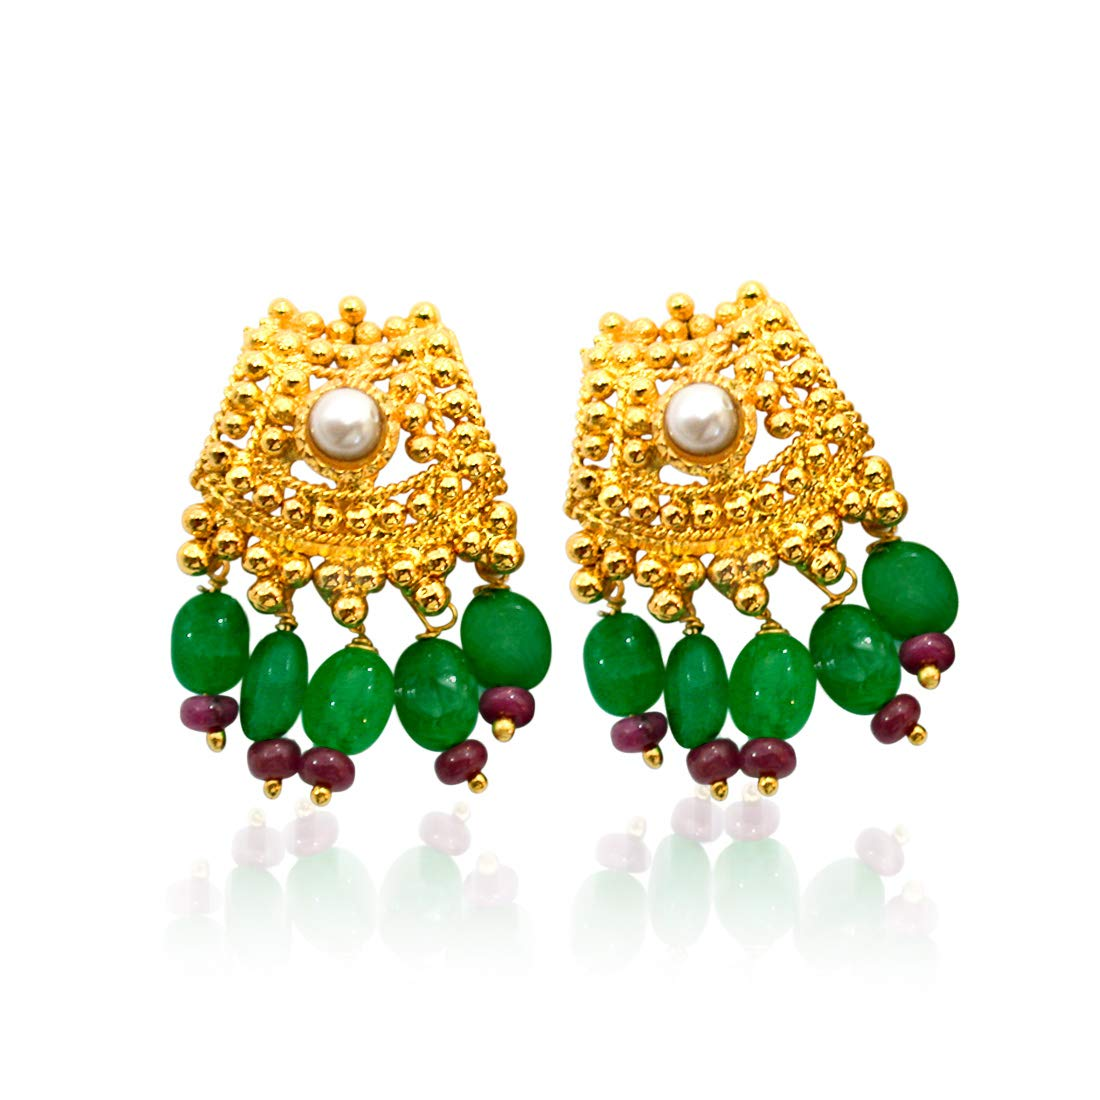 Real Freshwater Pearl, Ruby, Emerald & Gold Plated Earrings for Women (SE107)